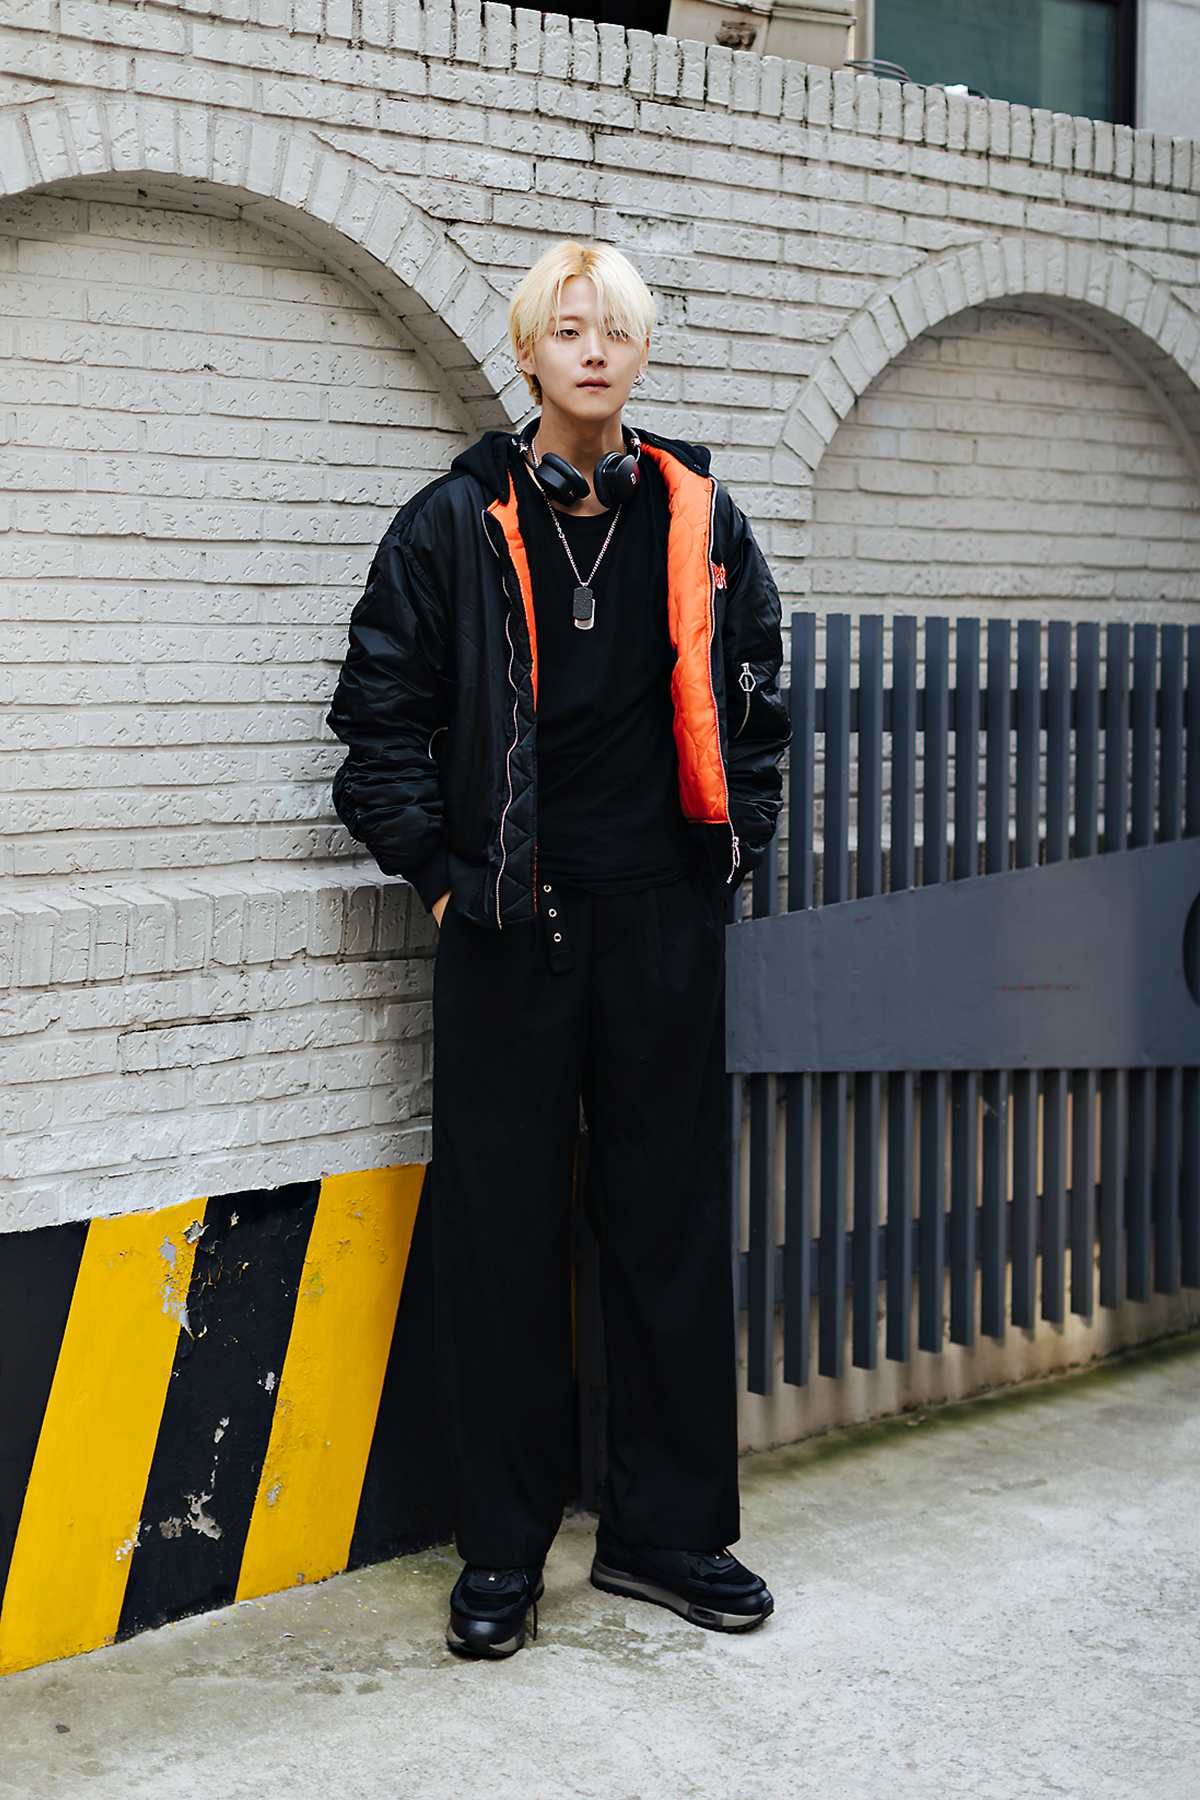 Men fall street style fourth week of october 2018 in seoul1